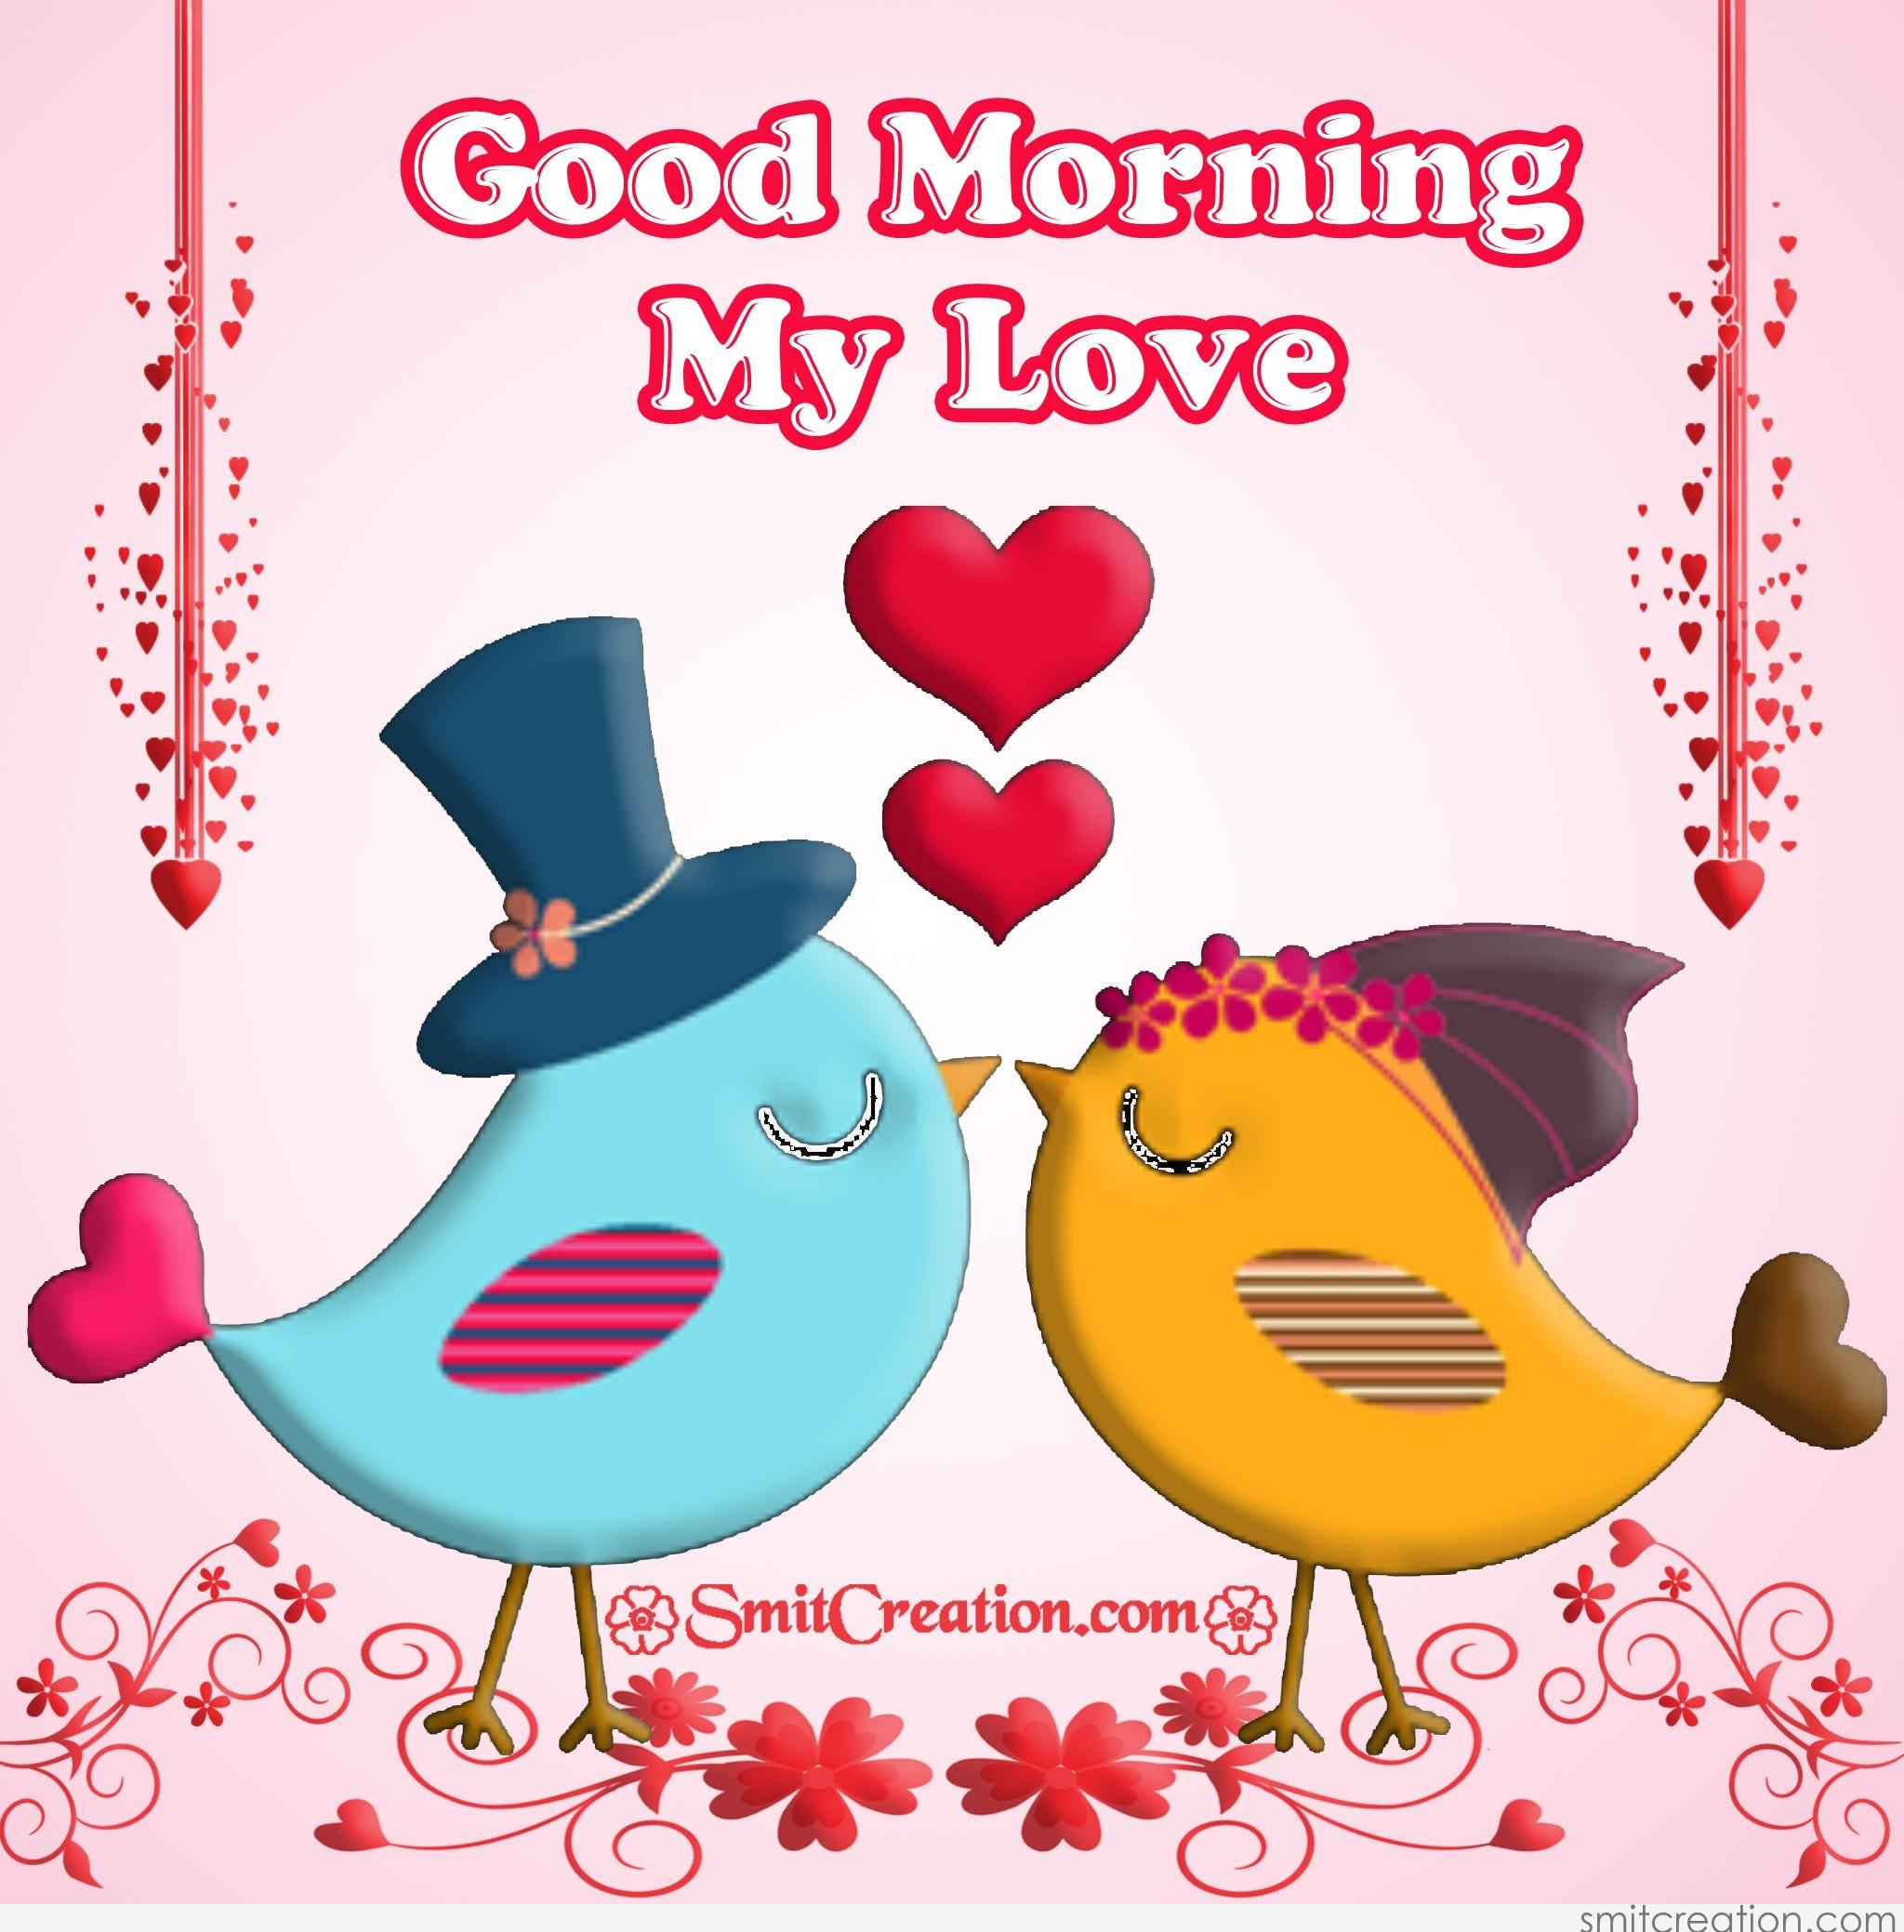 Good Morning My Love Images : Good morning my love pixshark images galleries